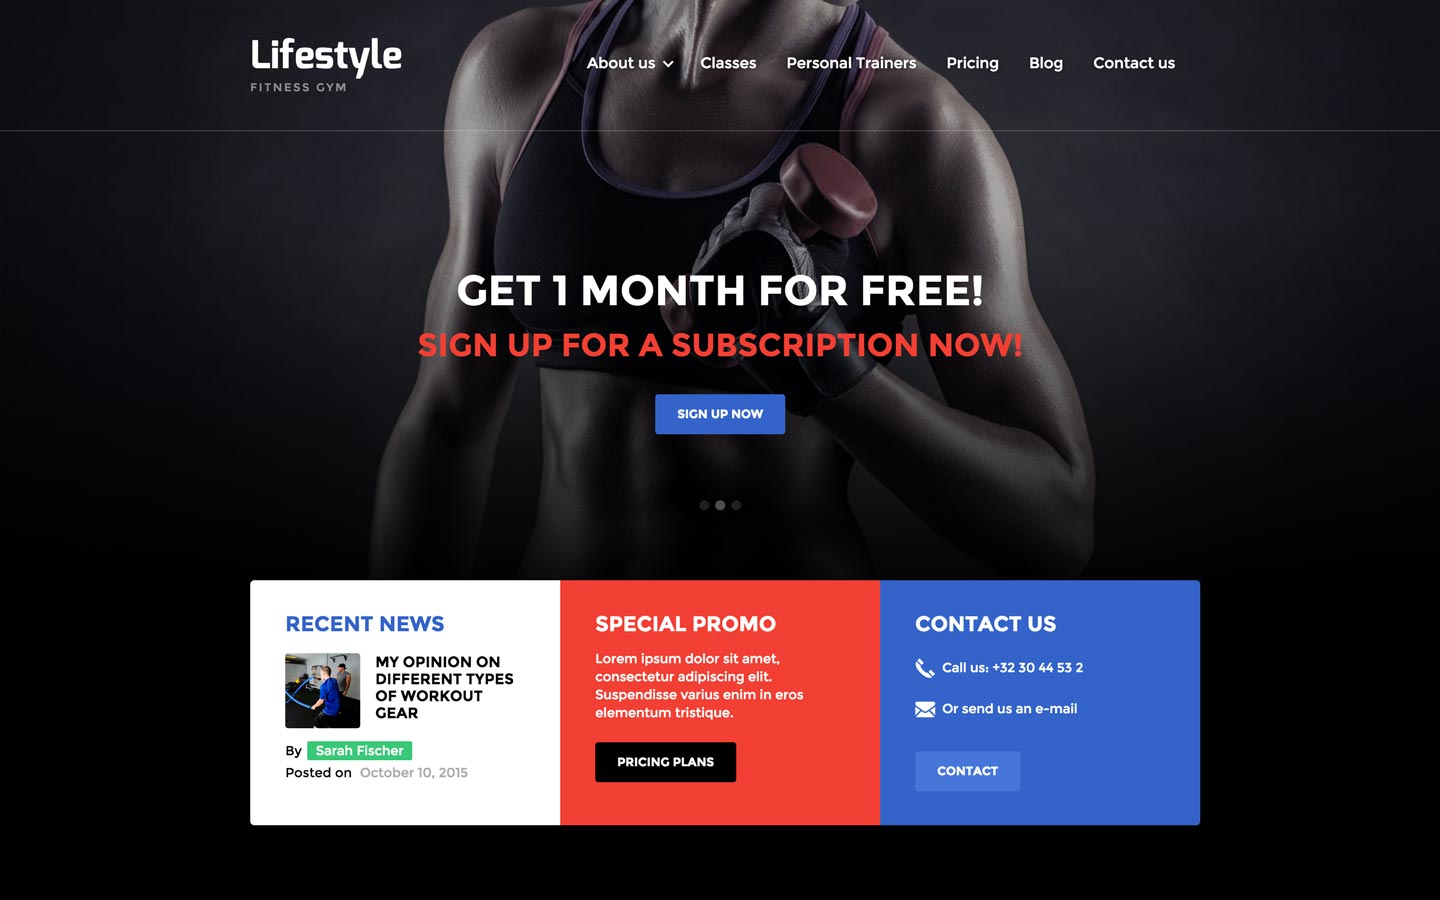 lifestyle gym html5 responsive website template. Black Bedroom Furniture Sets. Home Design Ideas